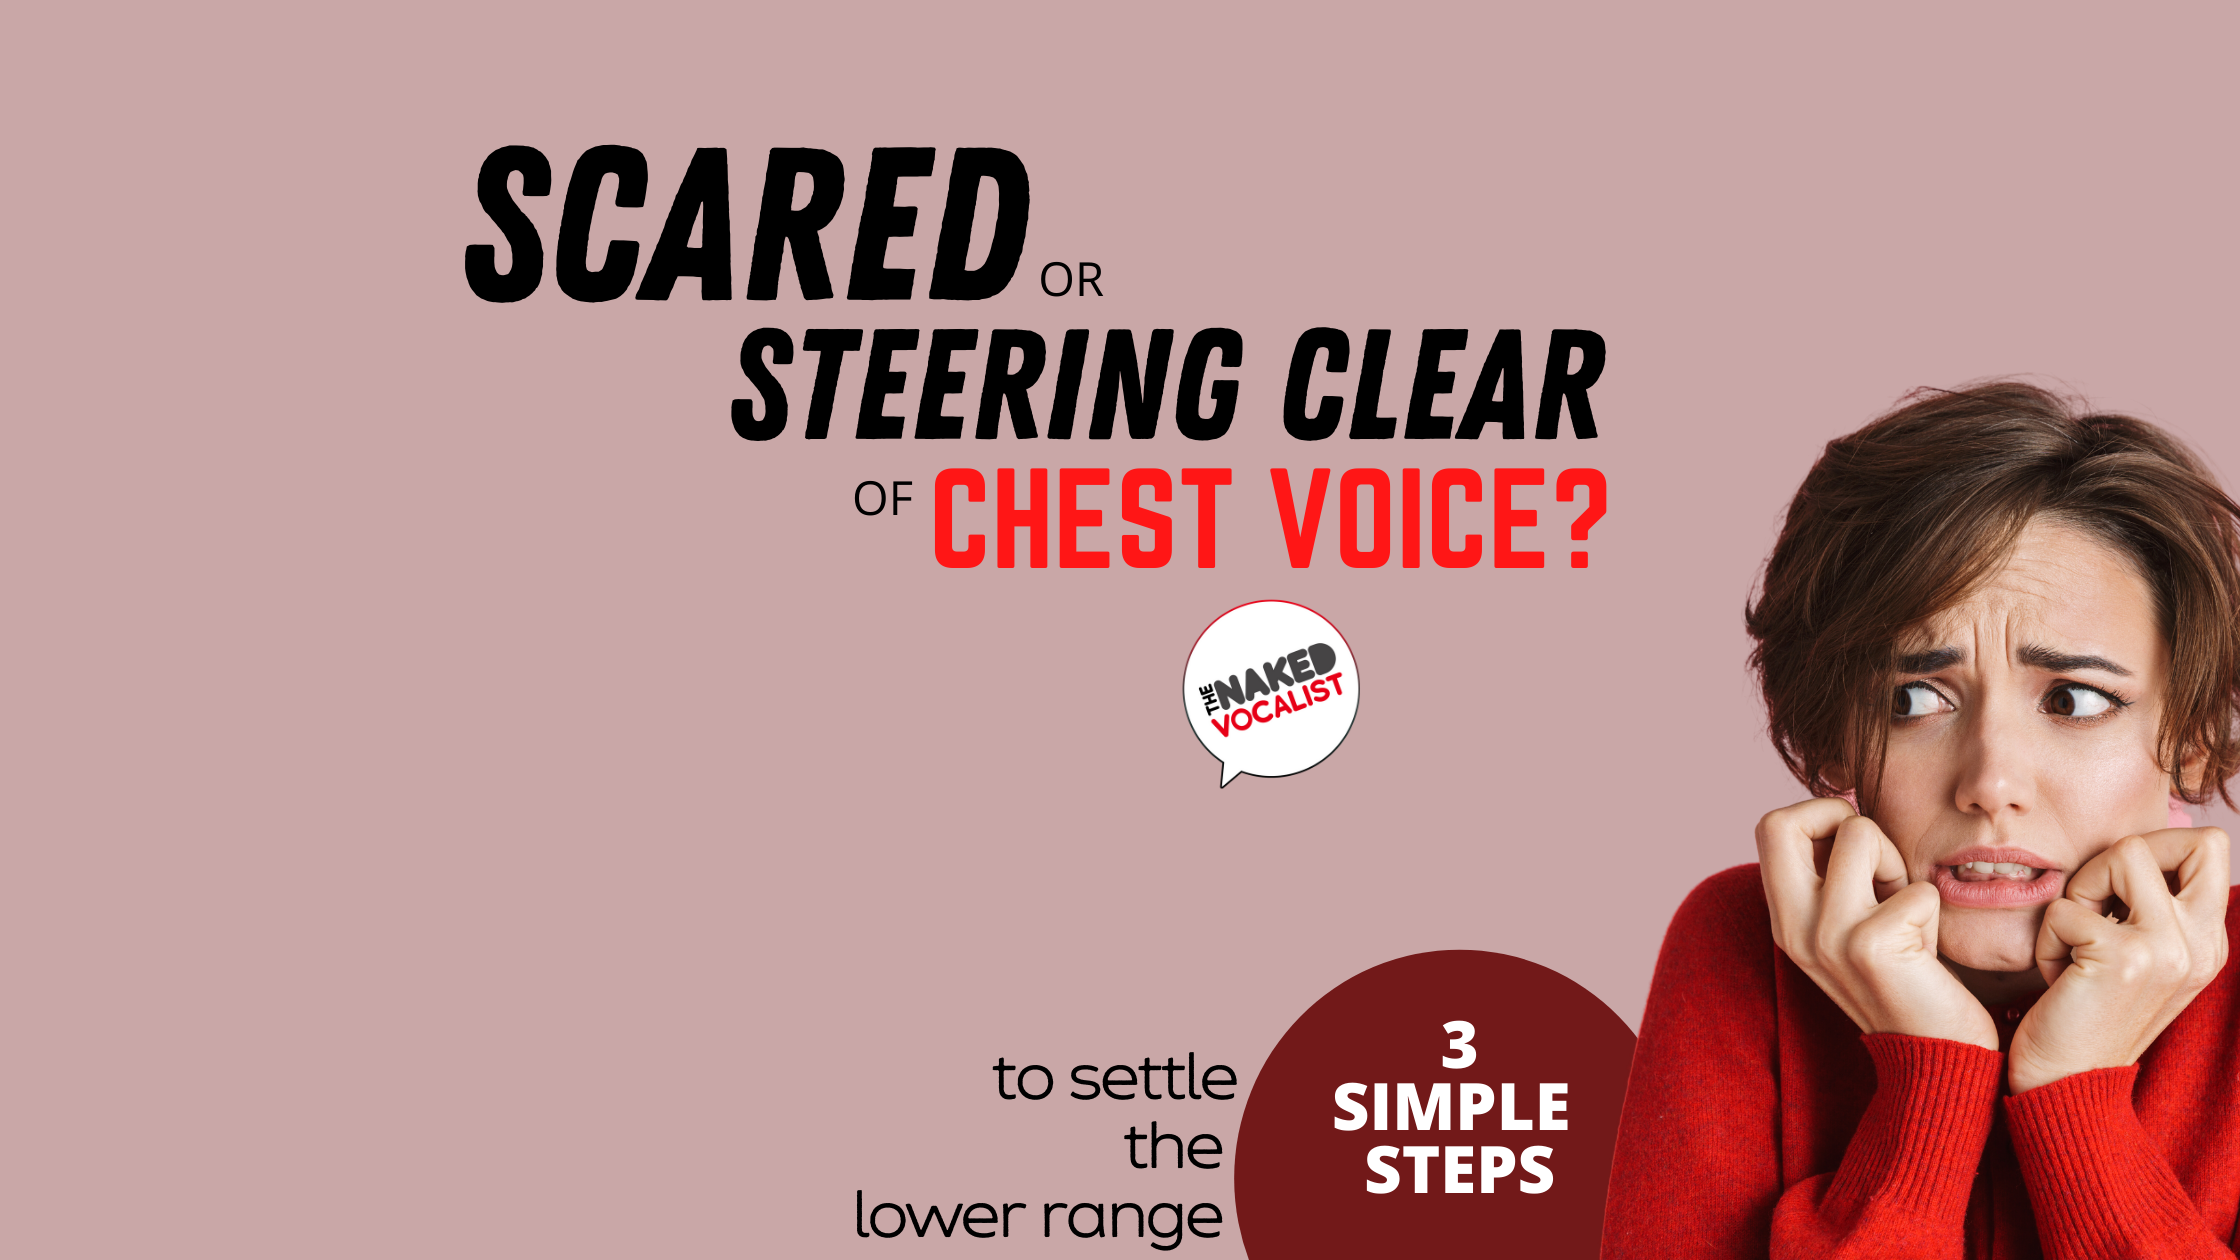 Scared or Steering Clear of Chest Voice? 3 Simple Steps to Settle the Lower Range.